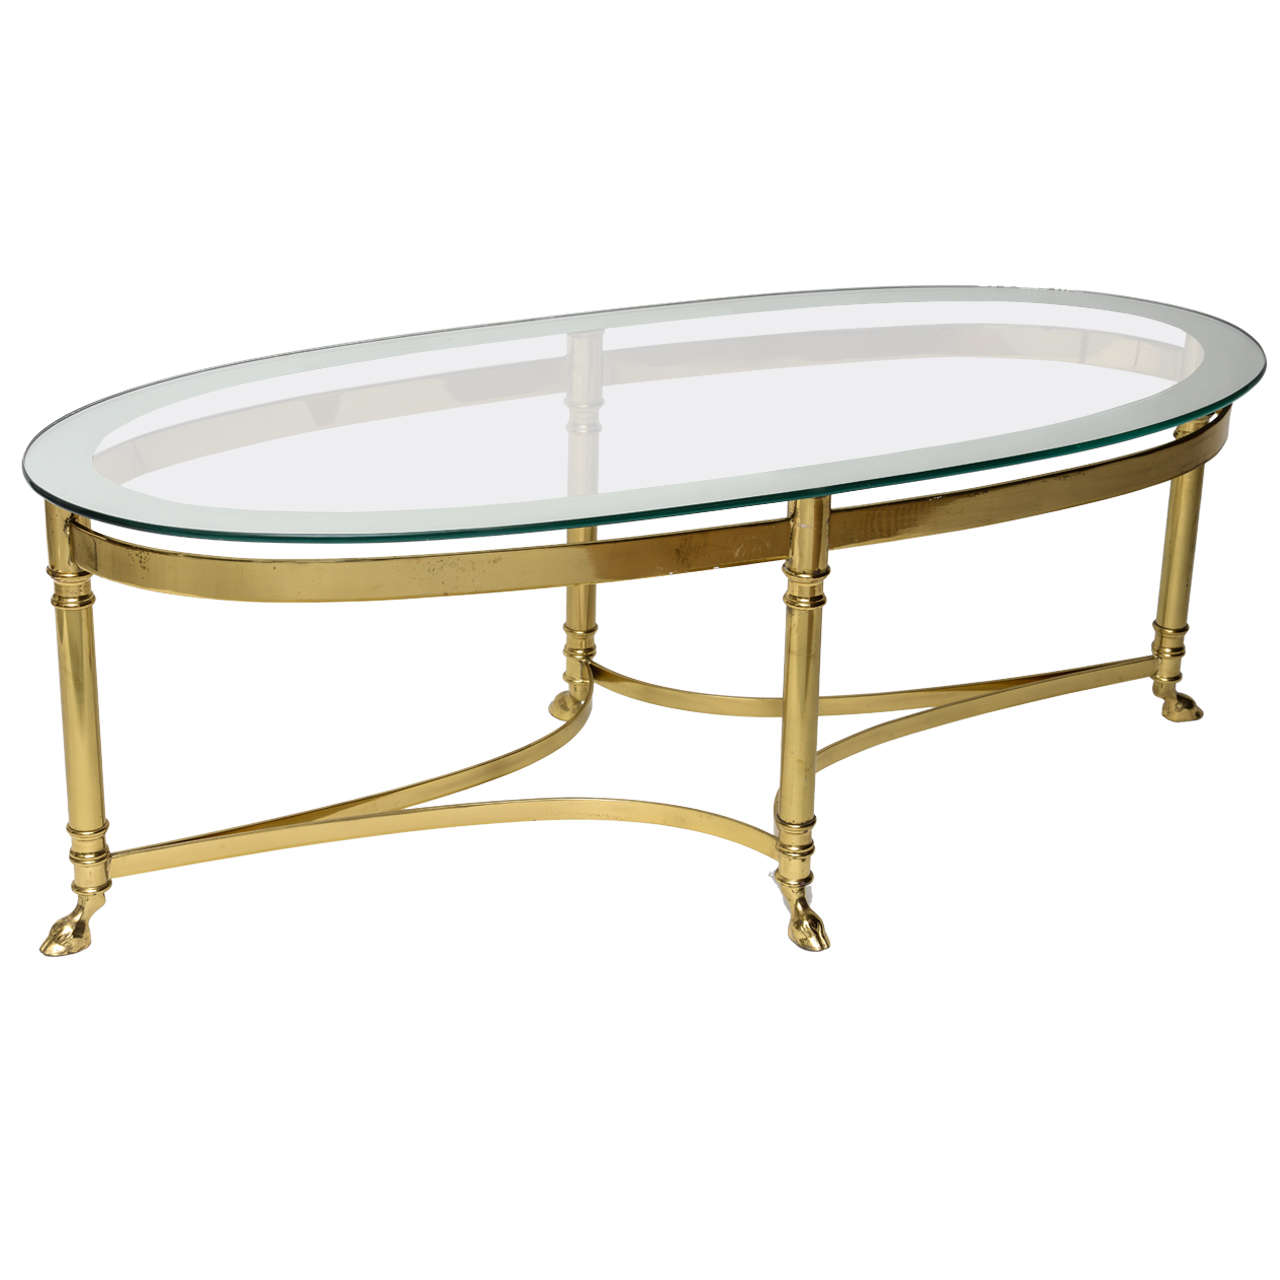 Oval brass coffee table with mirrored rim glass top at 1stdibs Antique brass coffee table